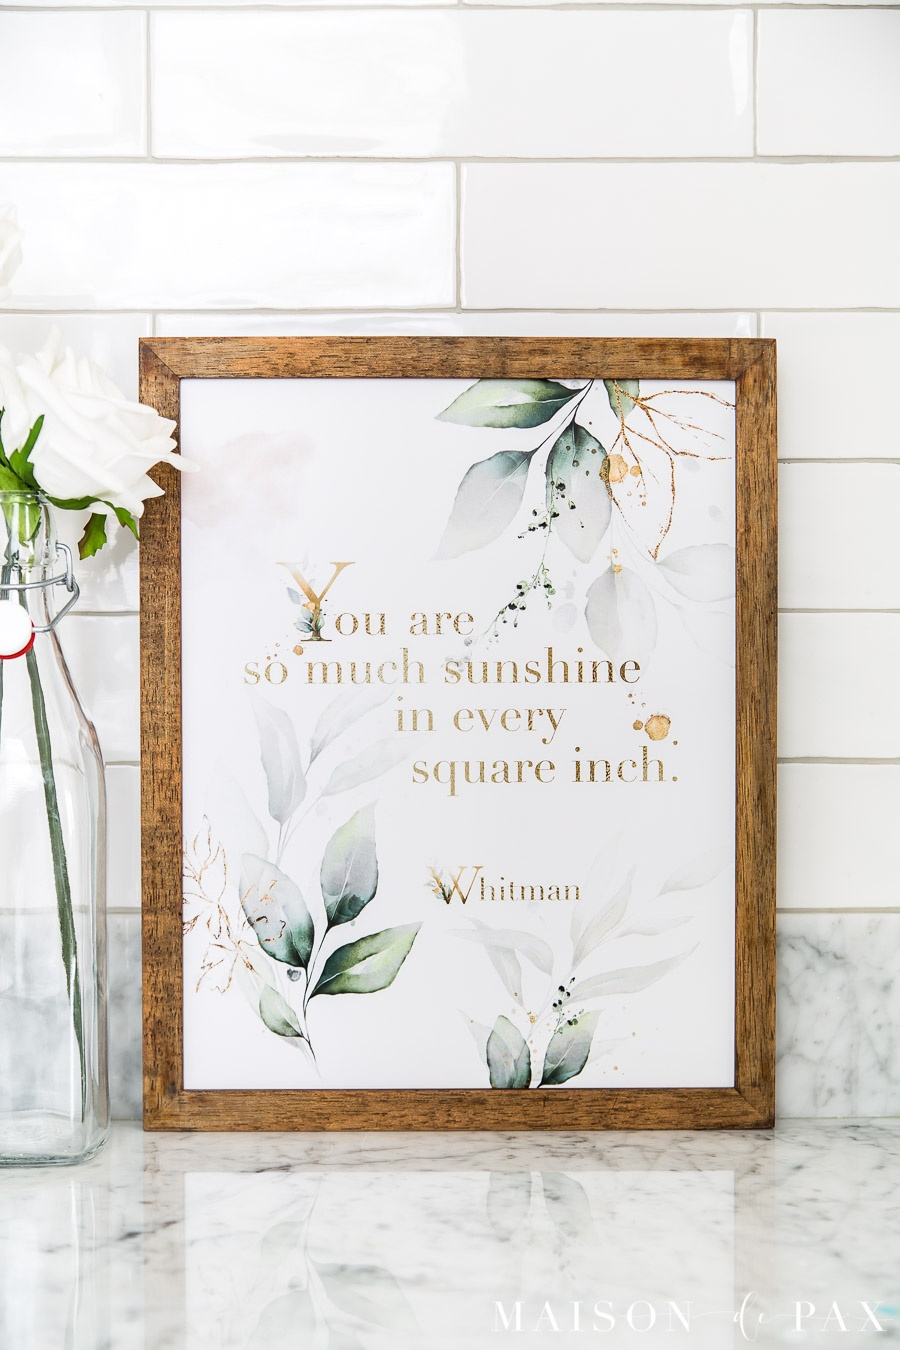 So Much Sunshine Printable Wall Art - Maison De Pax - Free Printable Wall Art Quotes